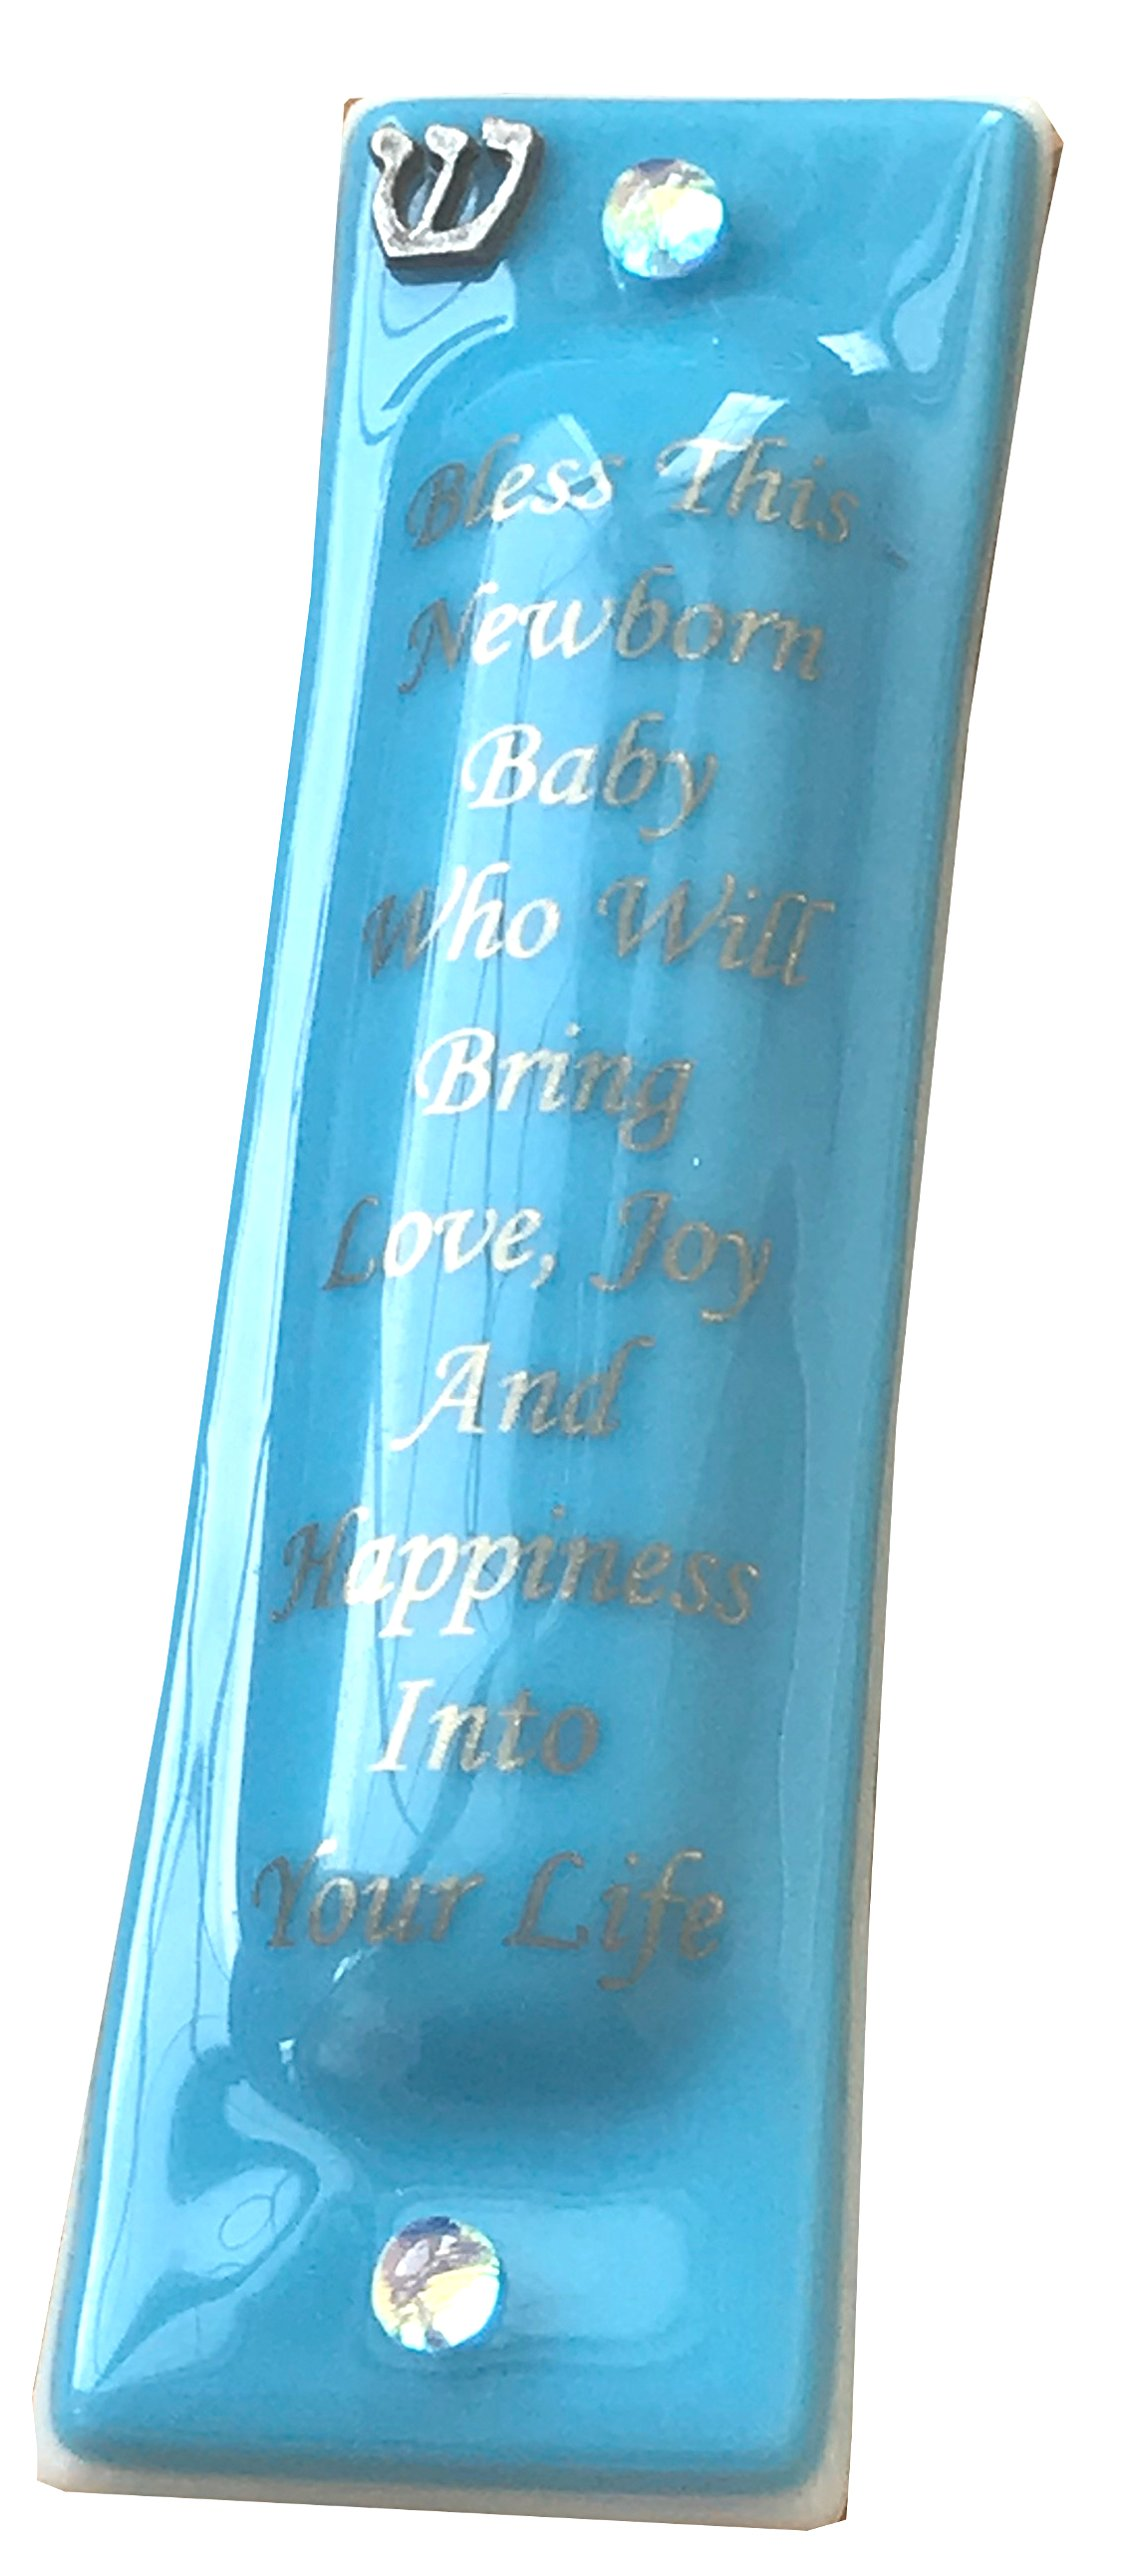 Baby Blessing Mezuzah Bless This Baby Who Will Bring Love, Joy and Happiness into Your Life Gift Box Non Kosher Scroll Included Hand Made in USA Guaranteed for Life (Ivory) (Opal Blue)